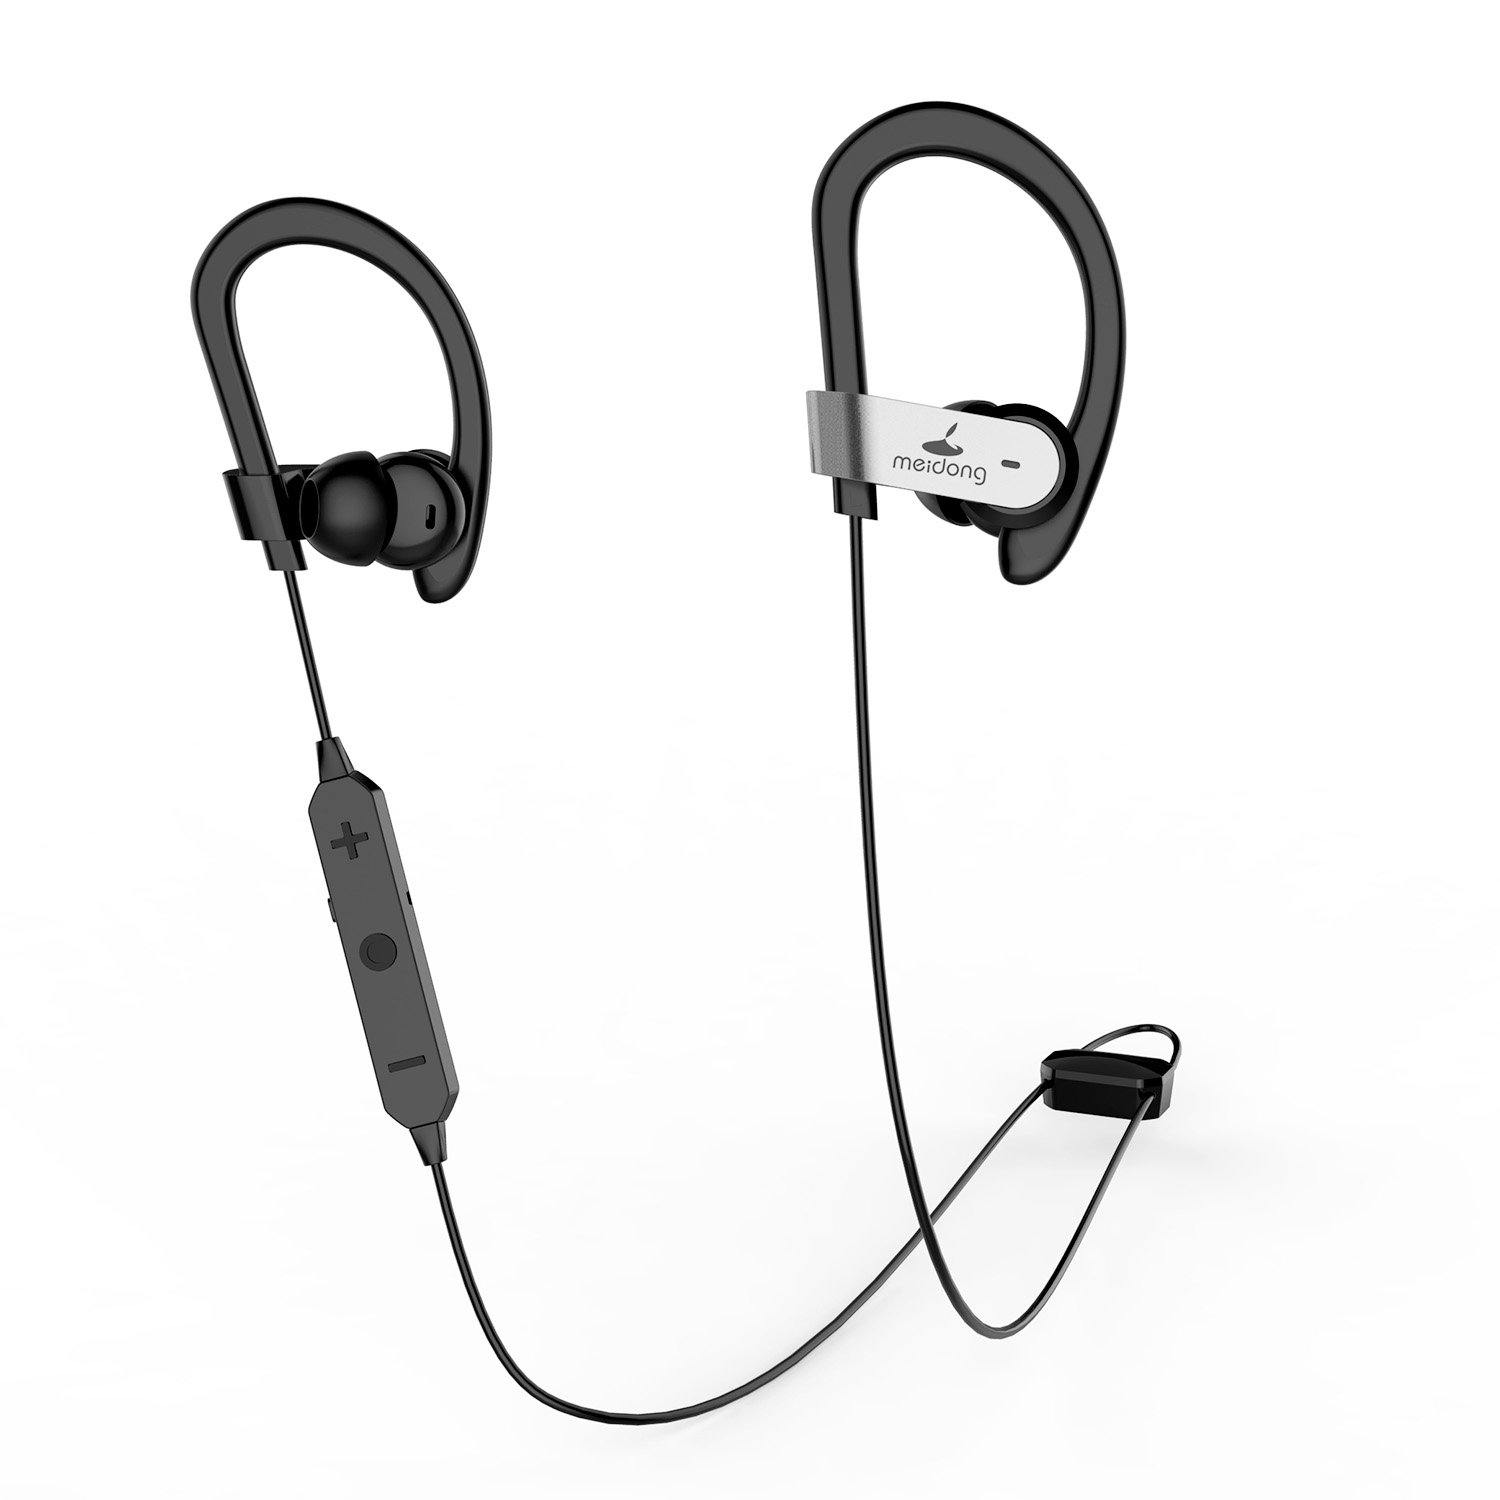 Meidong HE8C Active Noise Cancelling Bluetooth Earbuds in Ear Earphones Sports Headphones with Hard Travel Case Deep Bass 15 Hours Playtime apt-X Csr Built in Microphone Upgrade